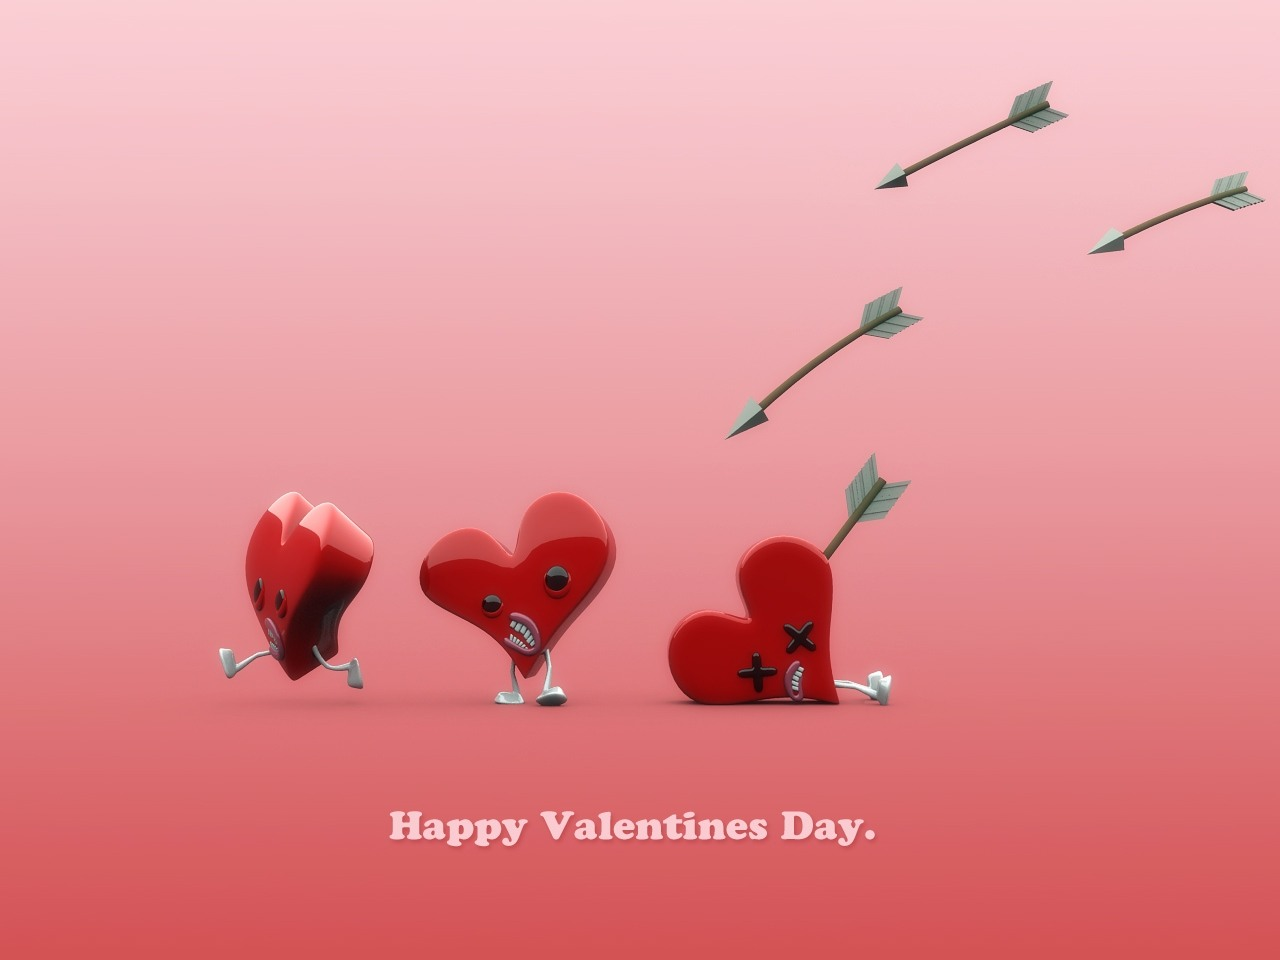 Valentine's Day Wallpapers Free Download